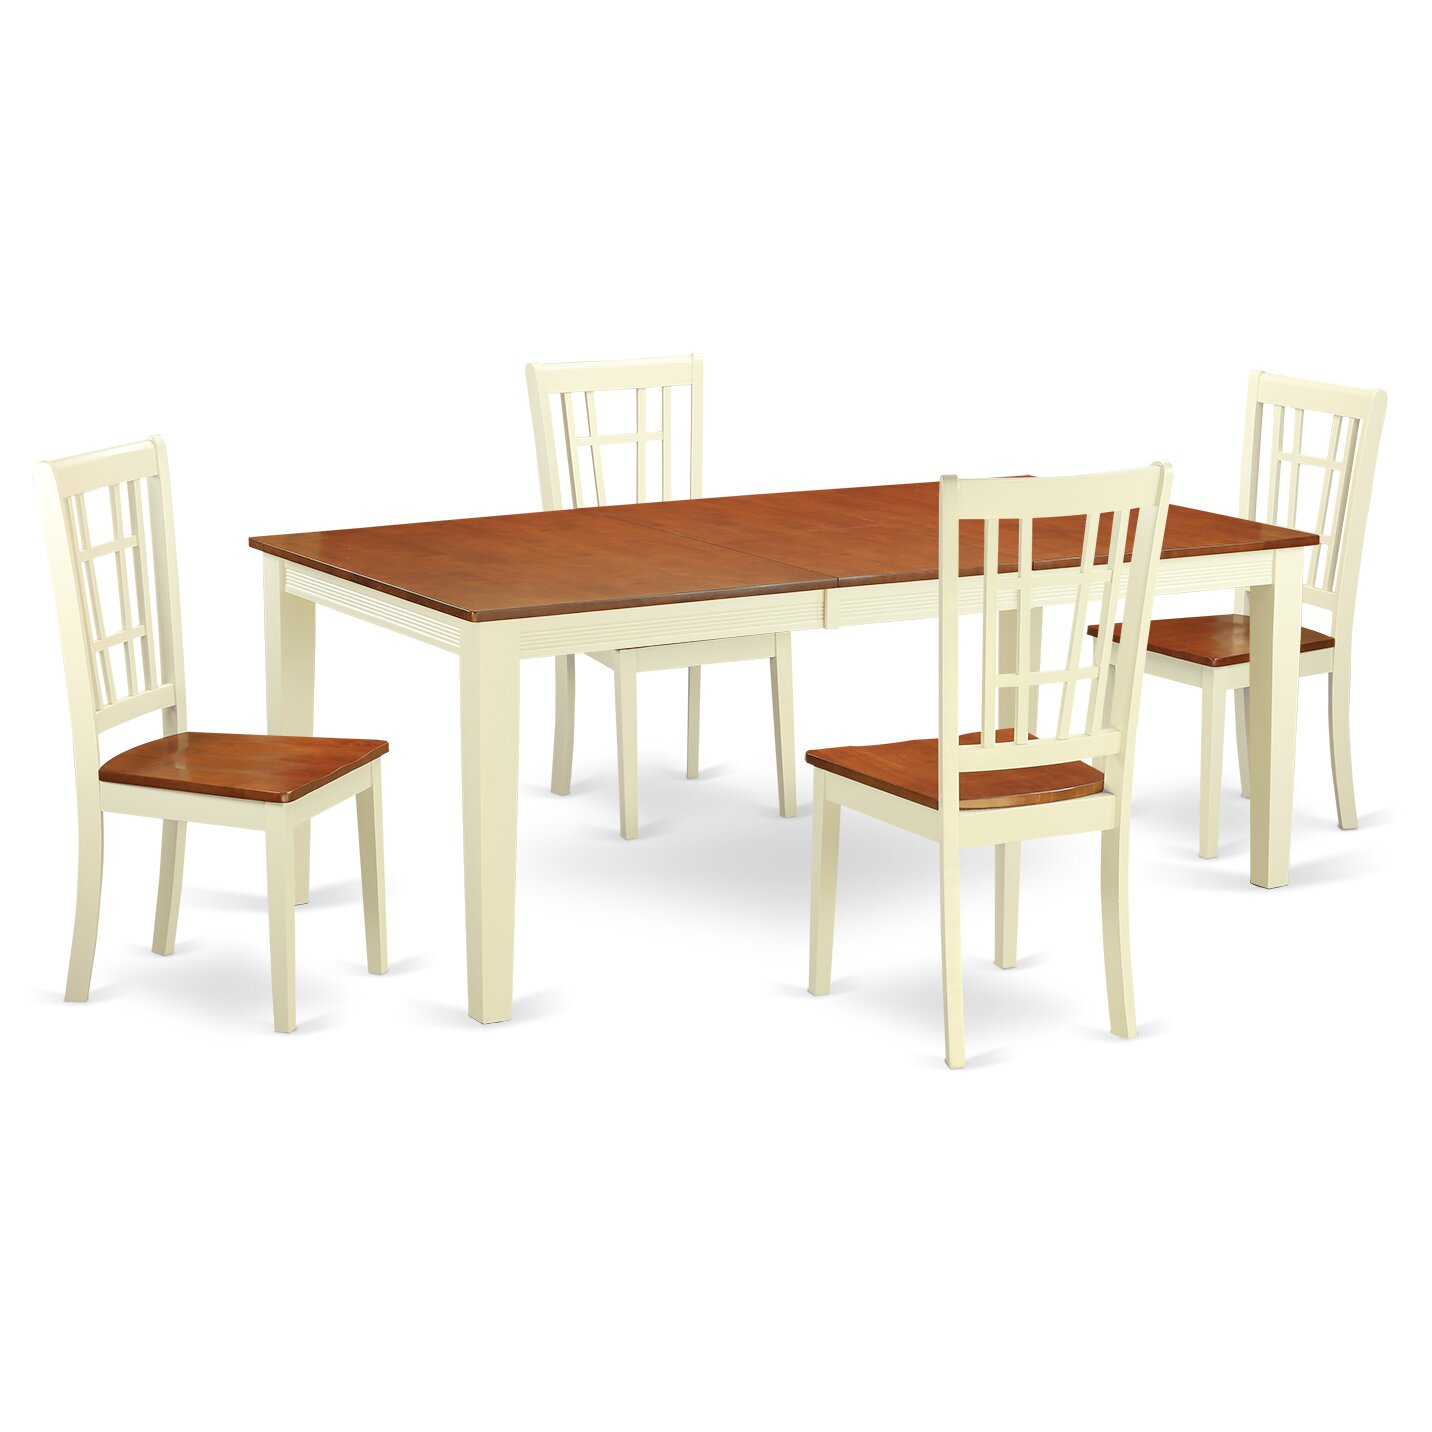 East west quincy 5 piece dining set wayfair for Small kitchen table and chairs